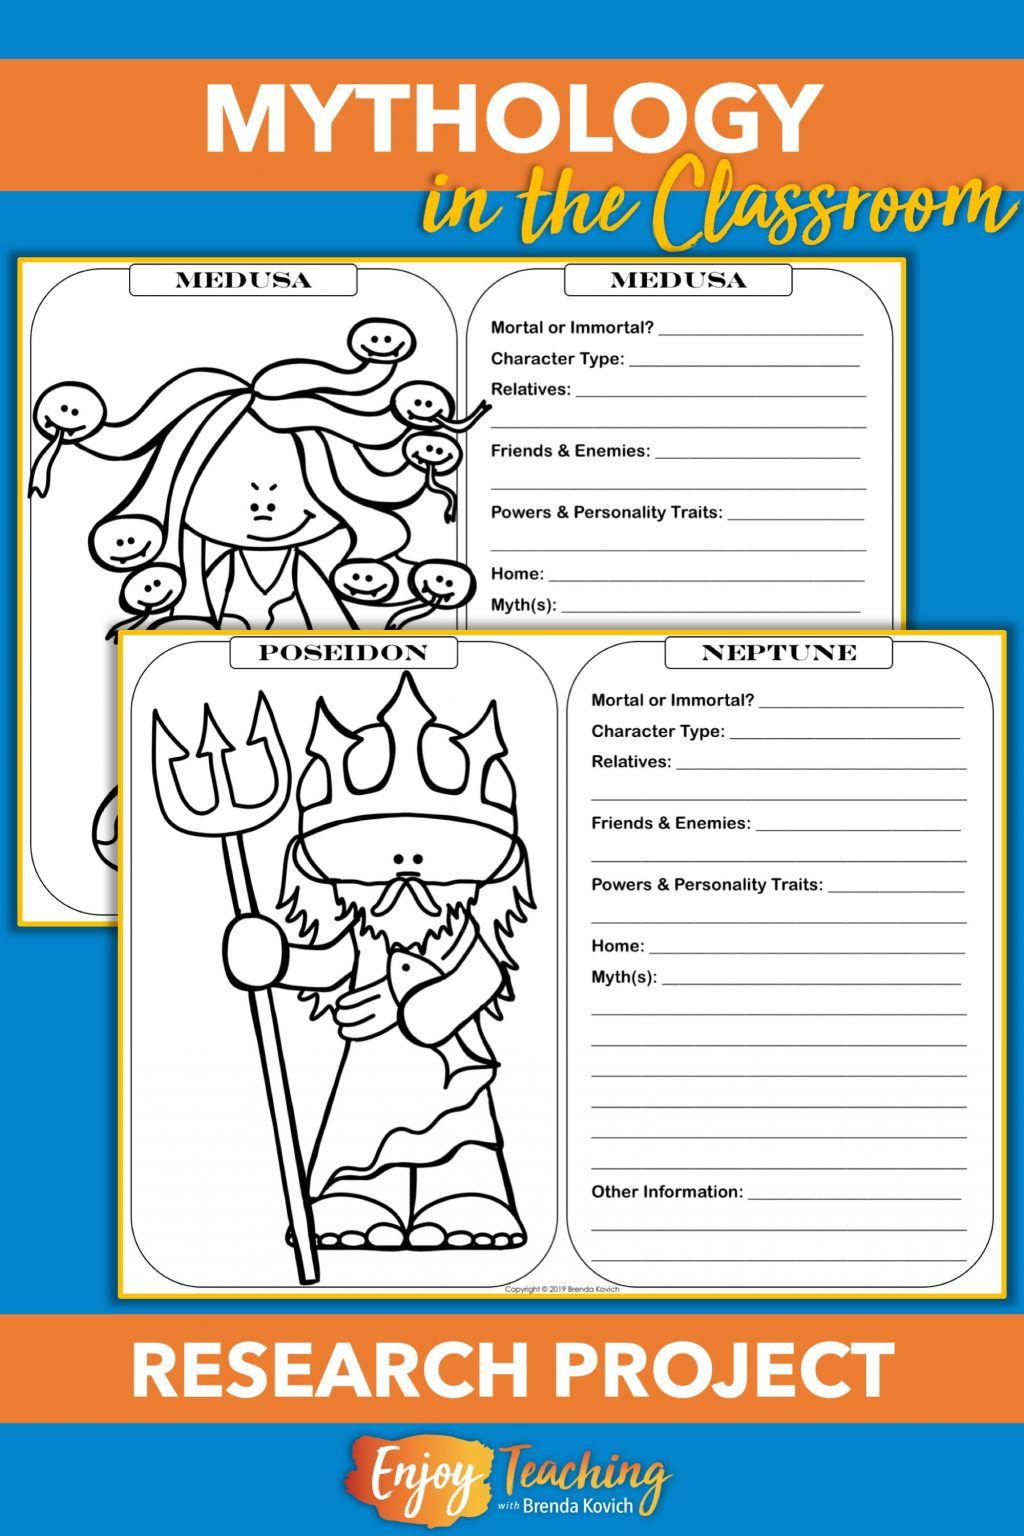 Greek Mythology Project 4th Grade Worksheets   Printable Worksheets and  Activities for Teachers [ 1536 x 1024 Pixel ]